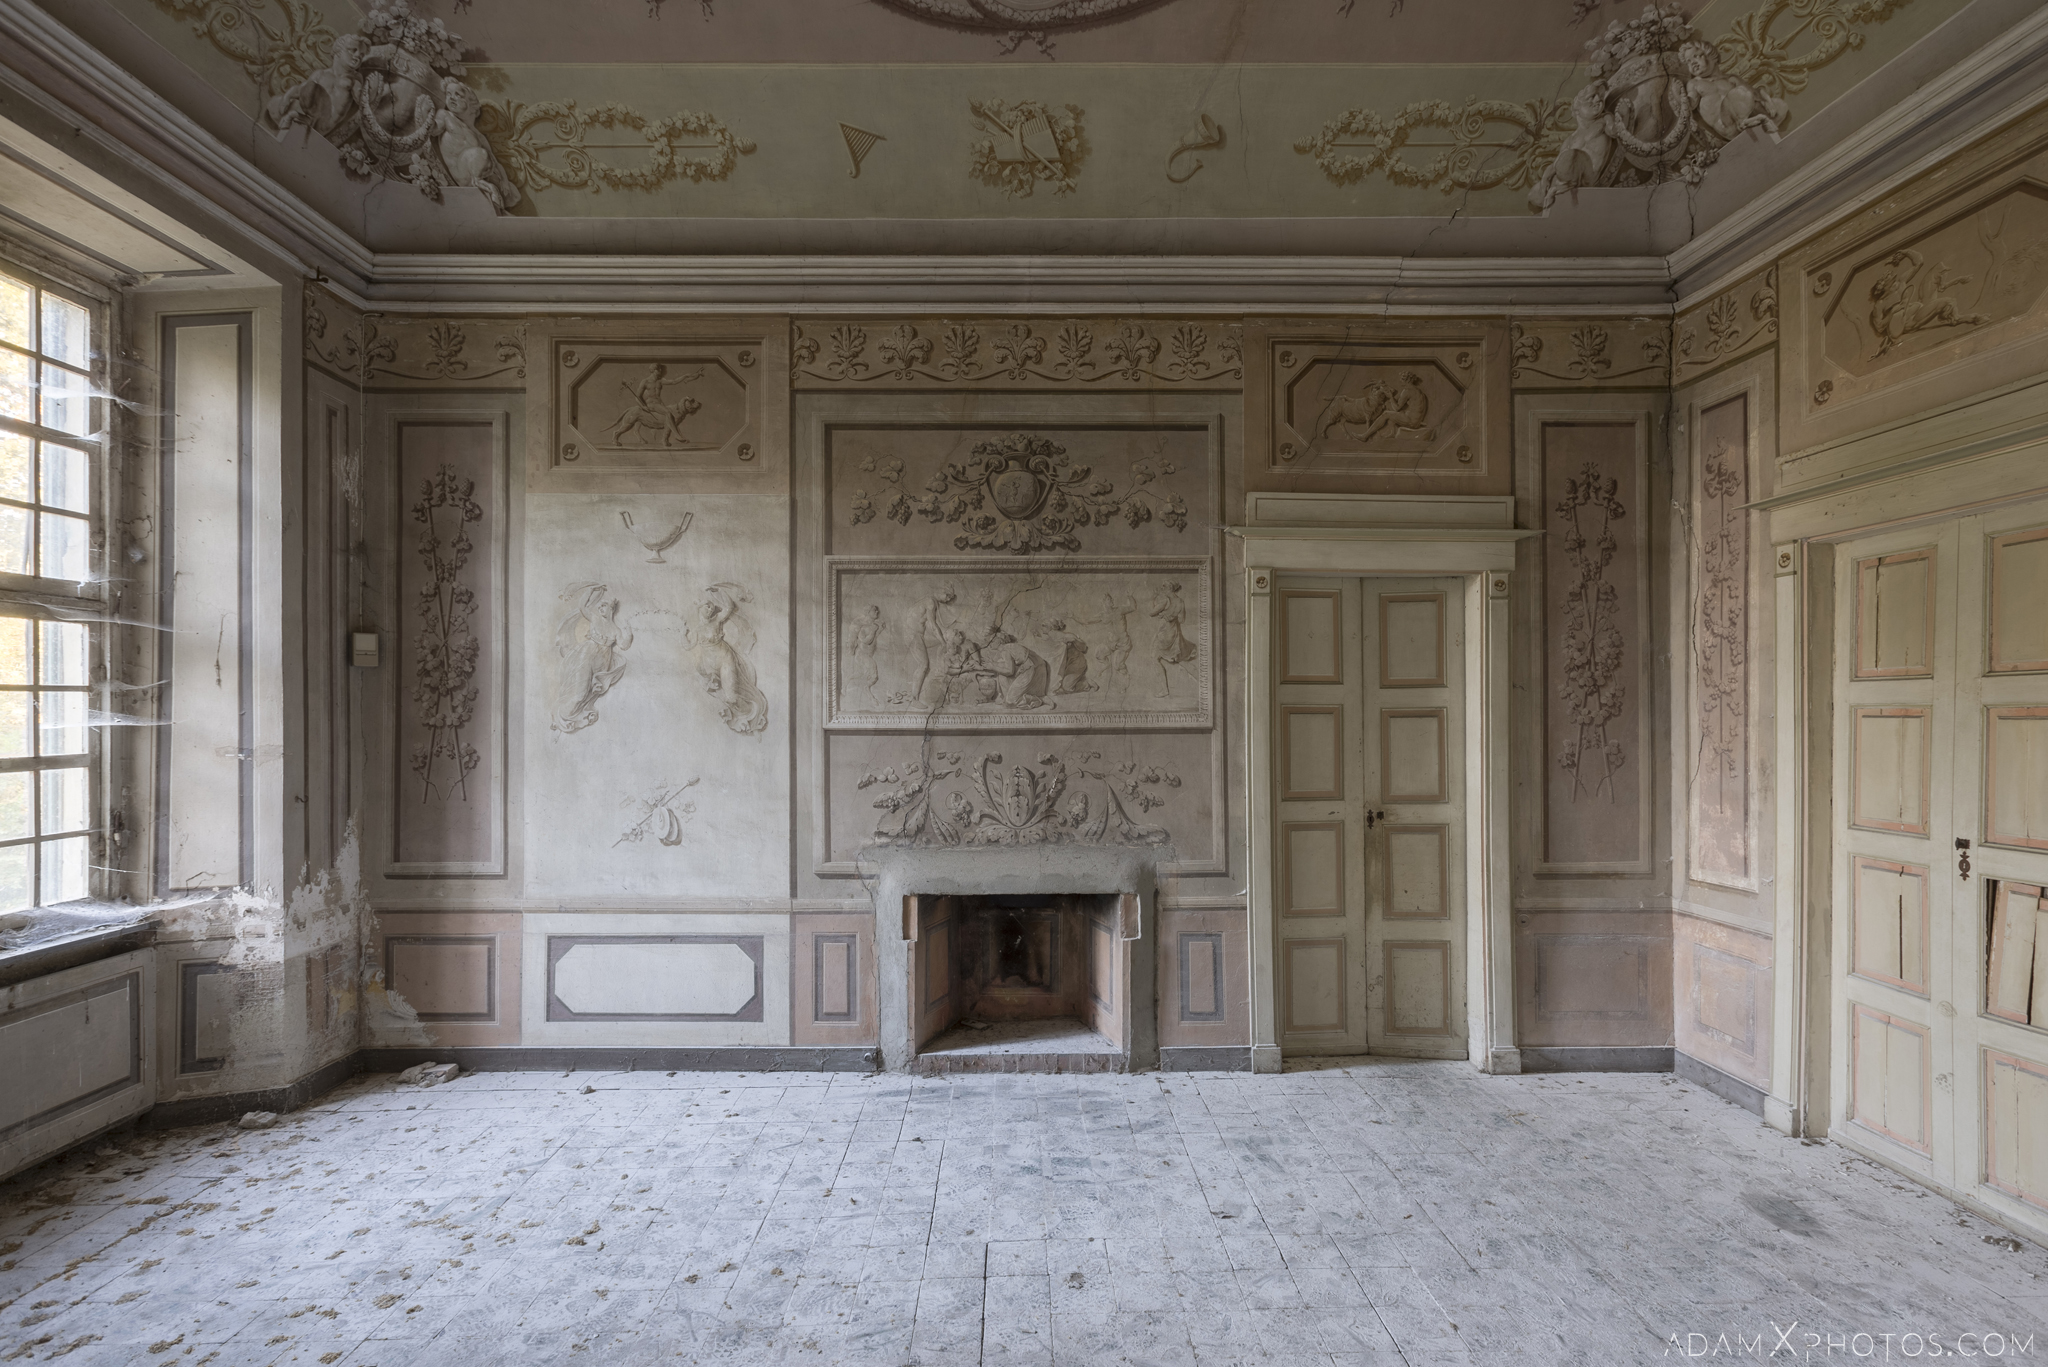 Pink room Palazzo L Villa Rosa Urbex Adam X Urban Exploration Italy Italia Access 2016 Abandoned Grand Ornate Neoclassical decay lost forgotten infiltration derelict location creepy haunting eerie